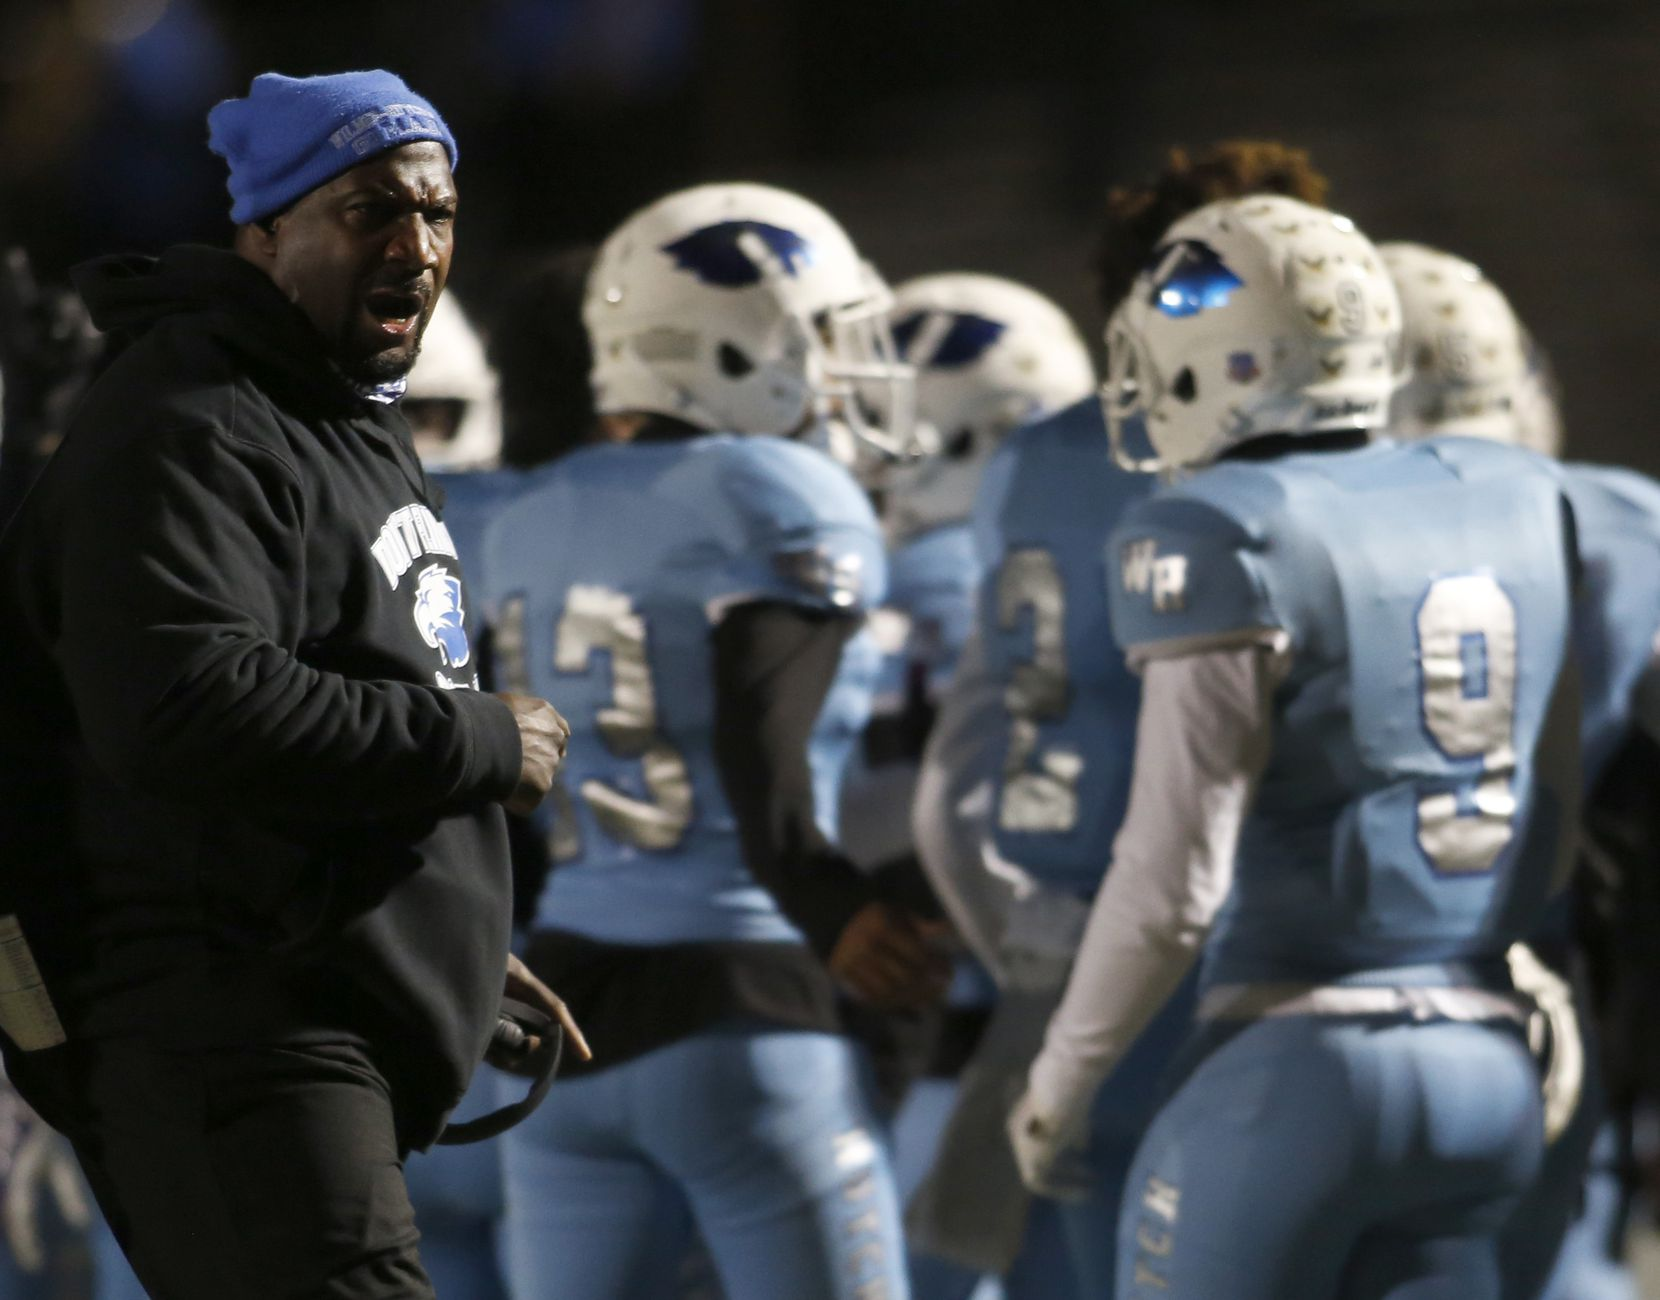 Wilmer Hutchins head coach Elzie Barnett Sr. shares some coaching feedback following an Eagles touchdown during first half action against Dallas Carter. The two teams played their District 8-4A Division 1 football game at Wilmer Hutchins High School Stadium in Dallas on October 23, 2020. (Steve Hamm/ Special Contributor)